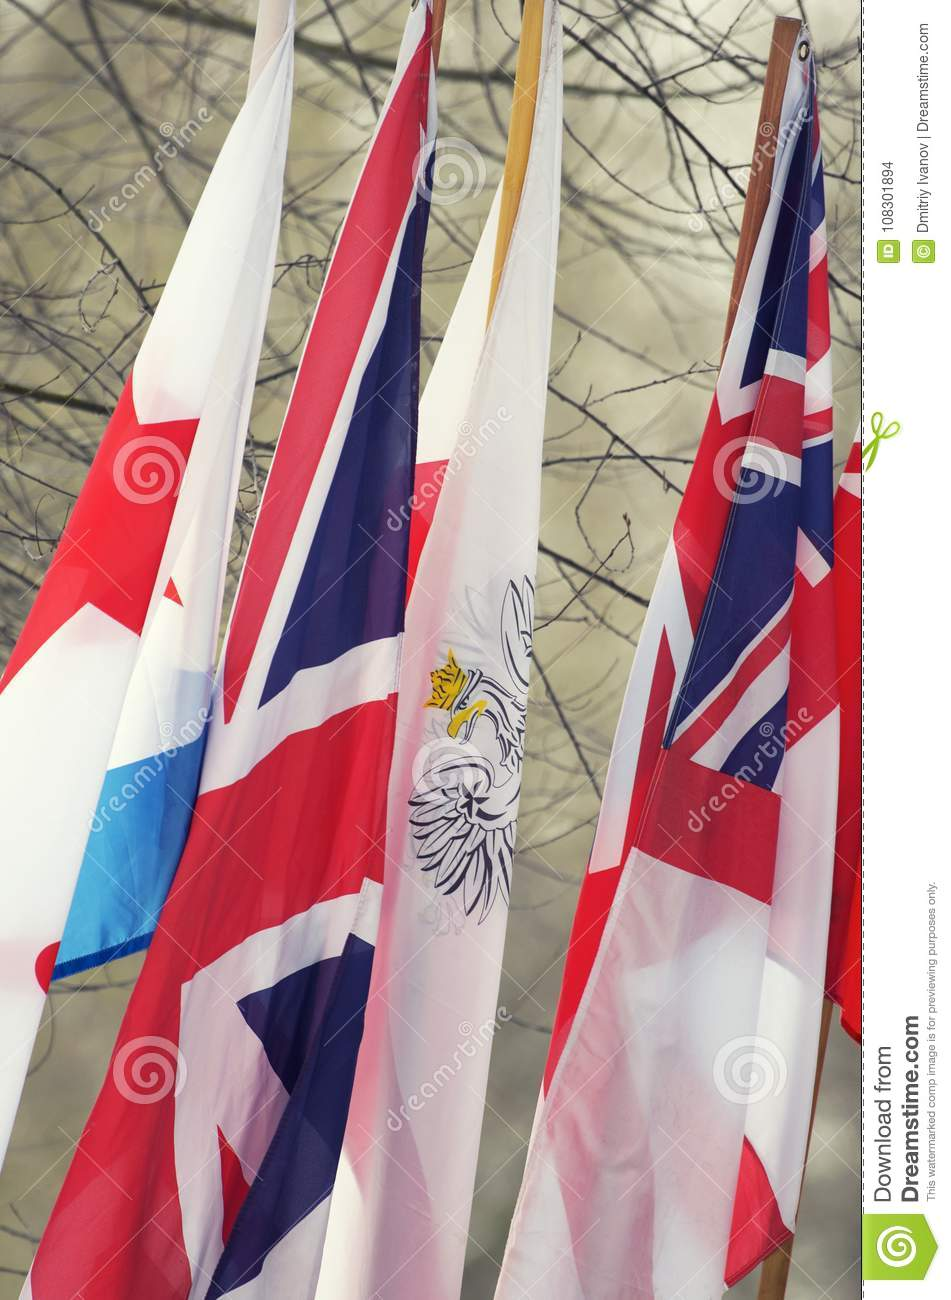 The Flags Of The Allied Anti-Hitler Coalition In World War